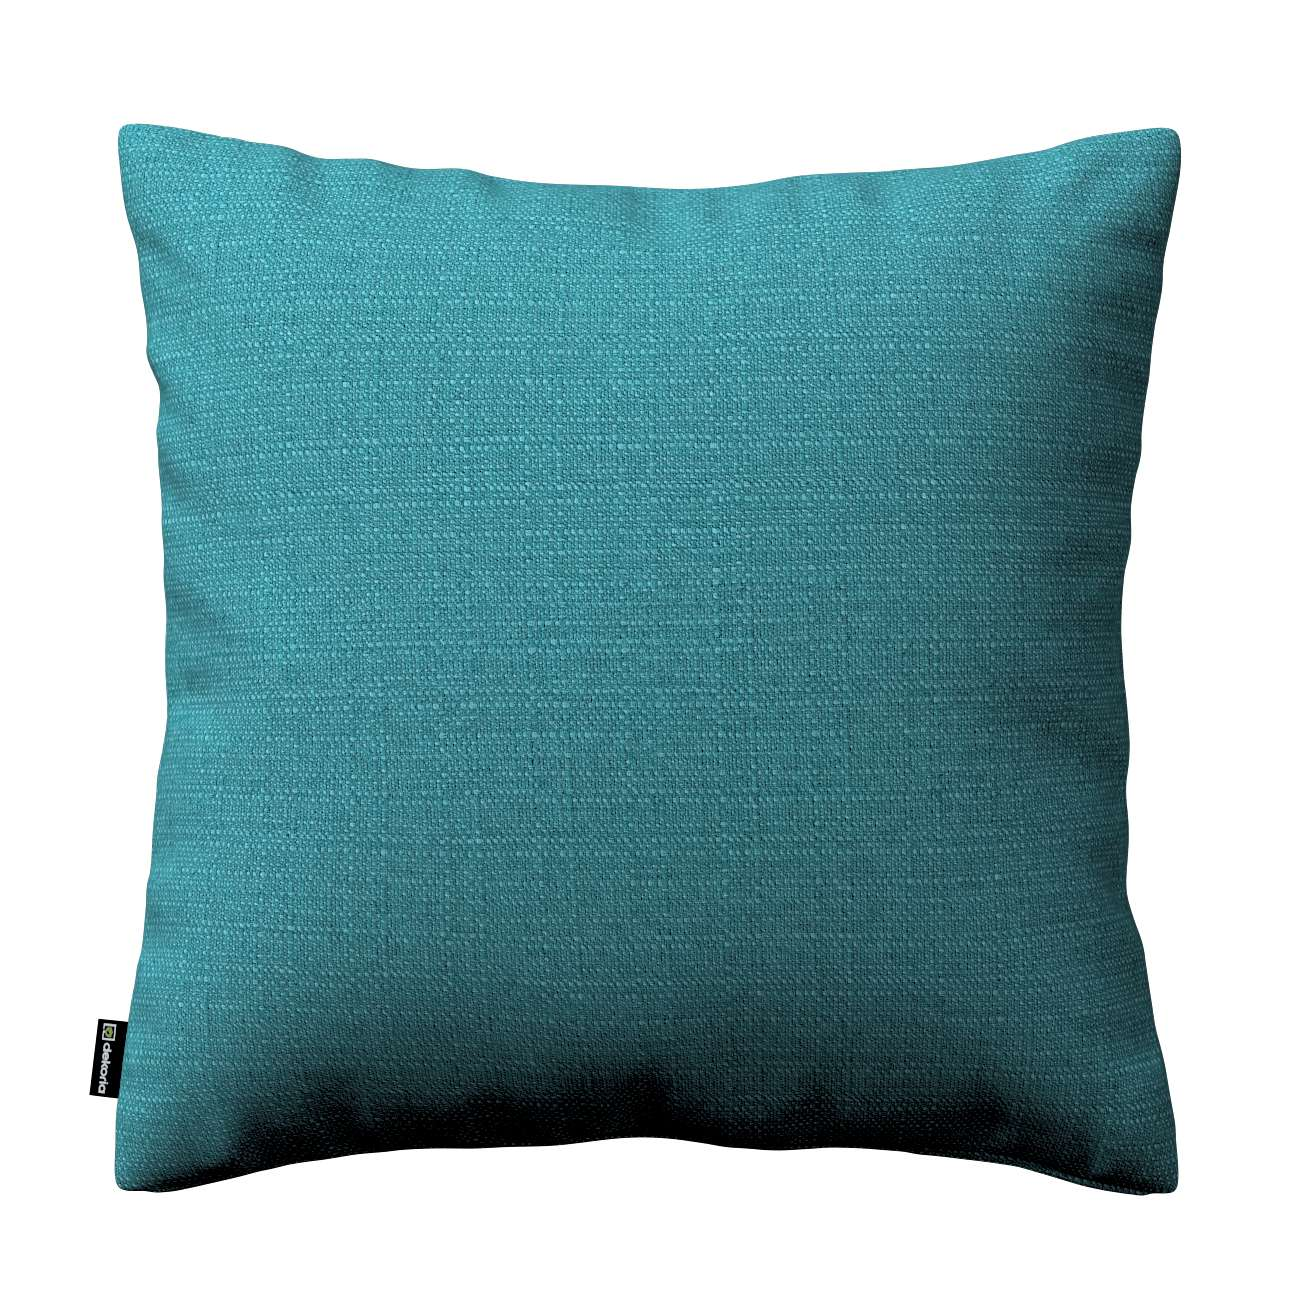 Kinga cushion cover in collection Granada, fabric: 104-92